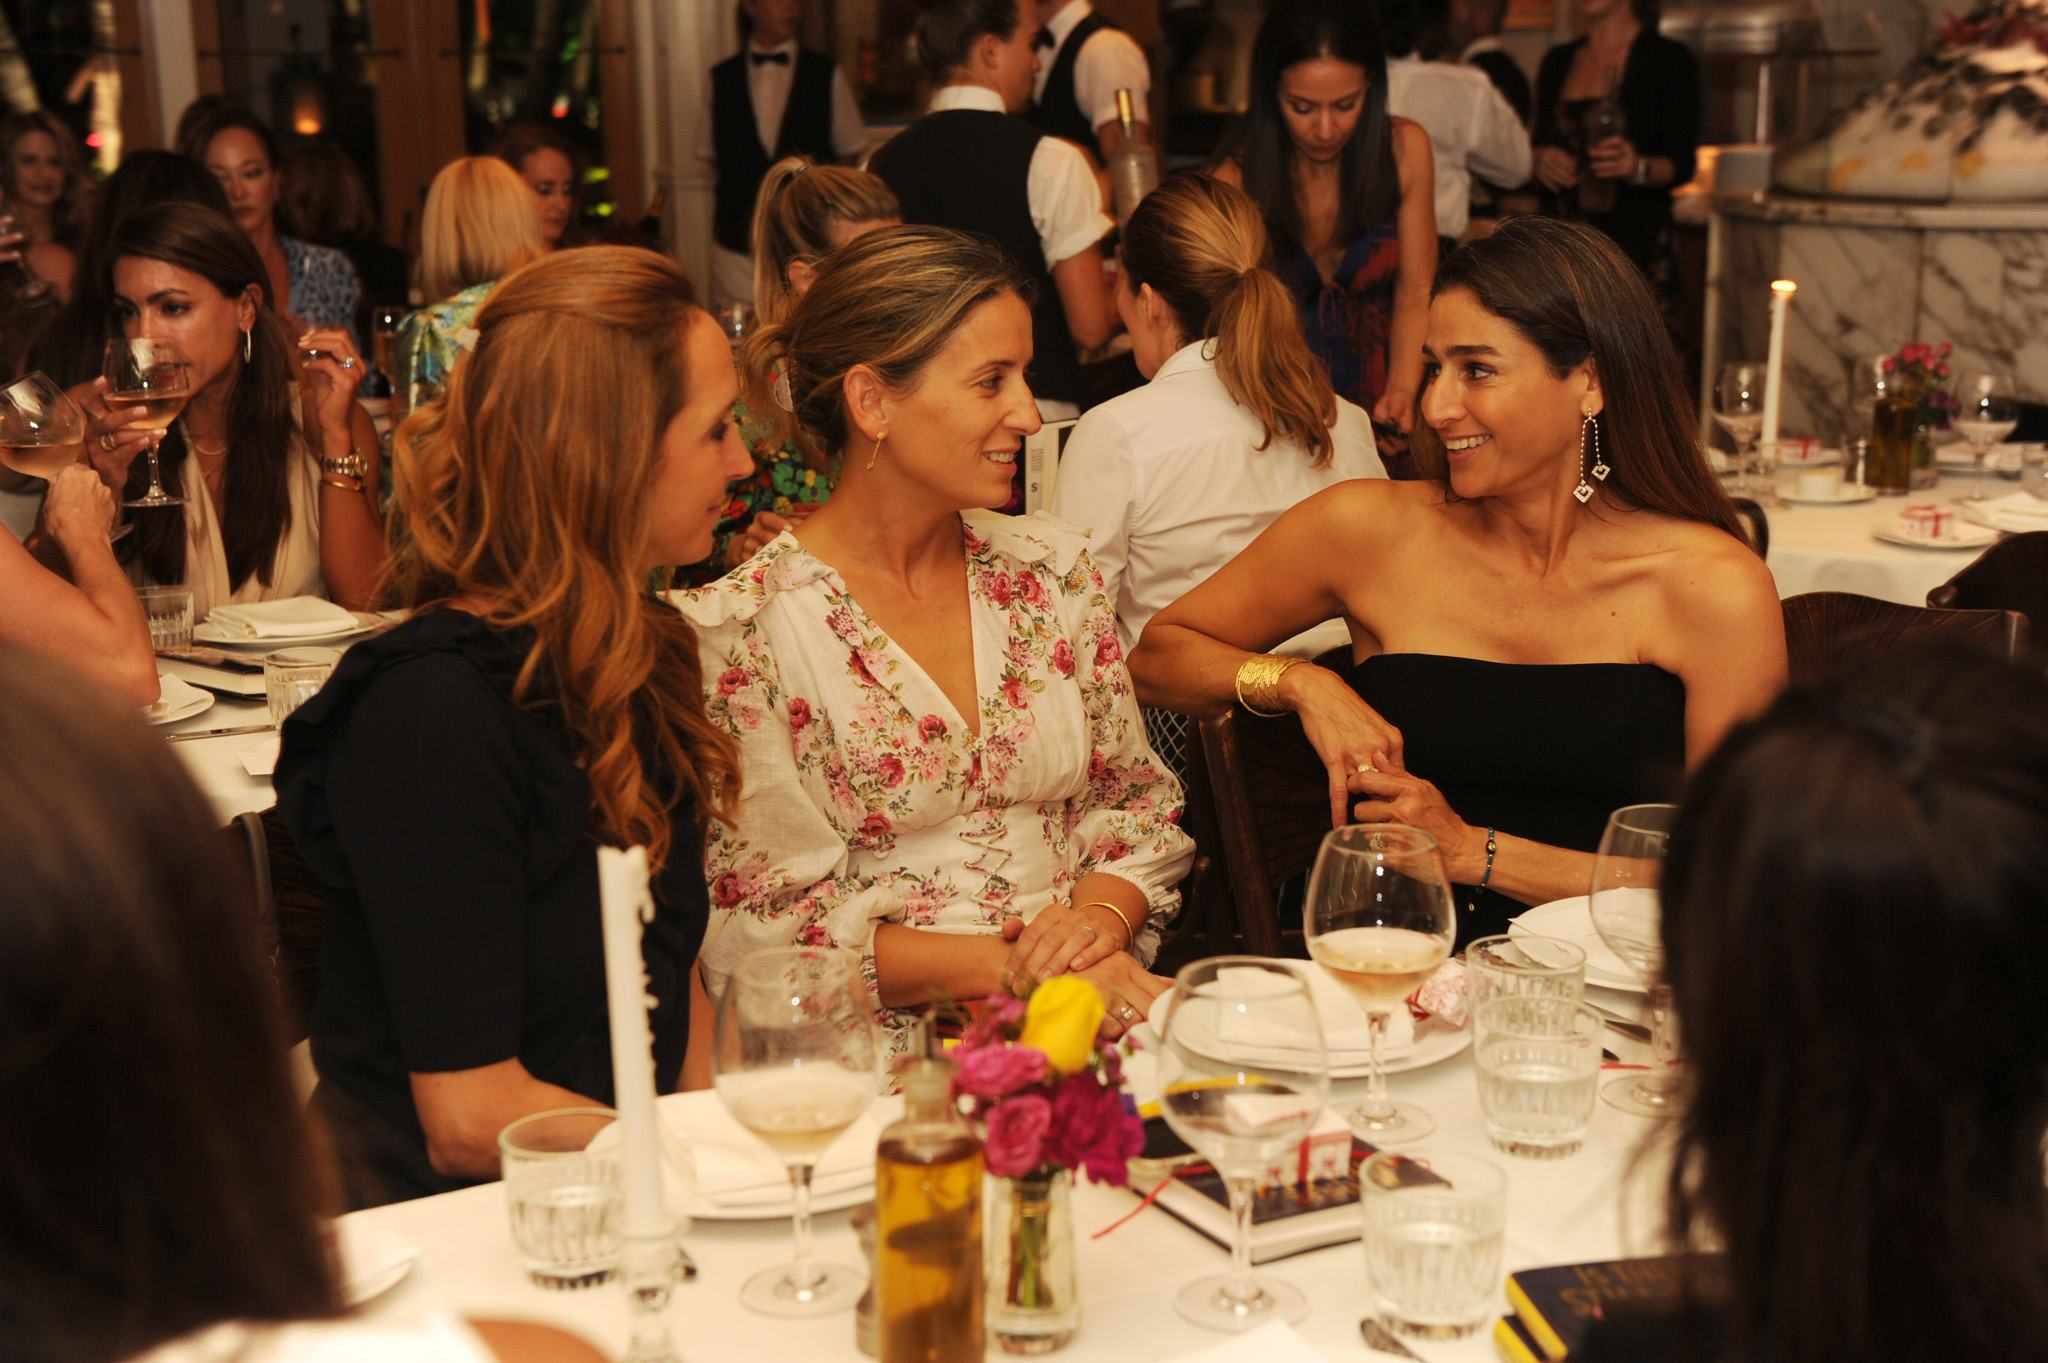 Le Zoo Bal Harbour hosts Candace Bushnell and Guests for a private dinner